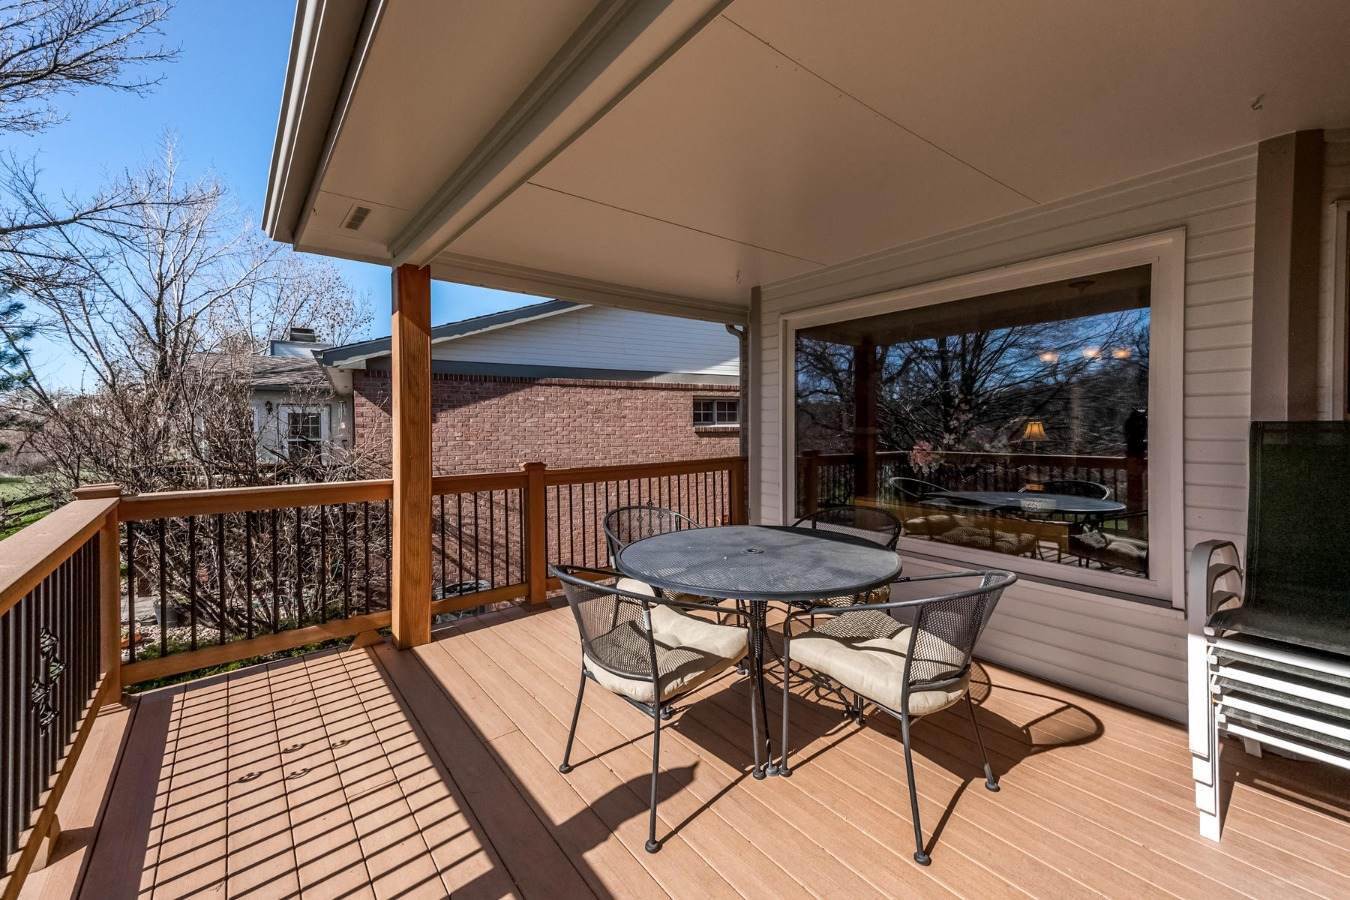 Covered Deck is Usable Year Round